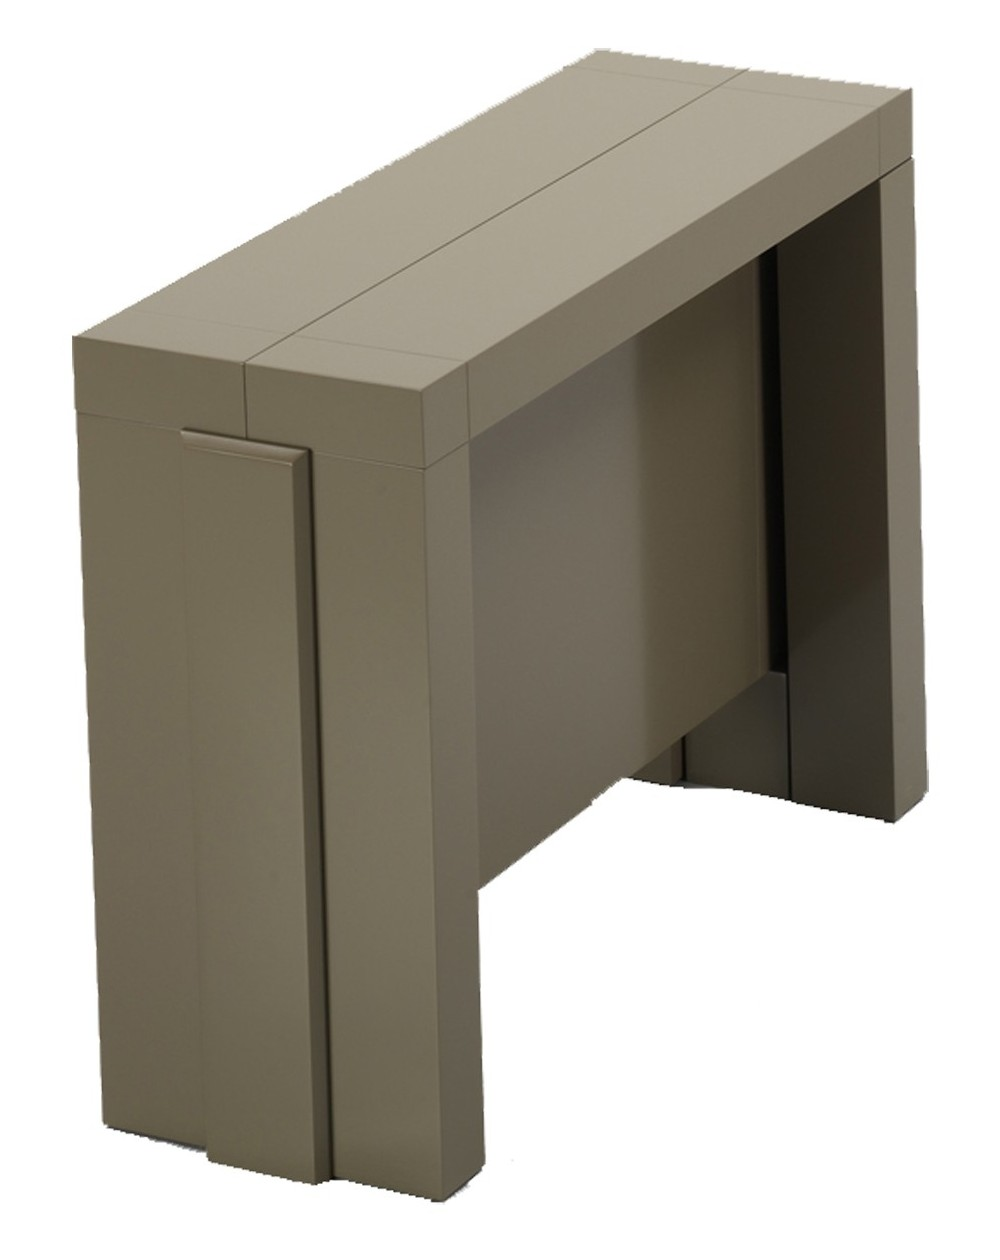 Console extensible integrable avec allonges integrees for Table extensible 80 cm de large